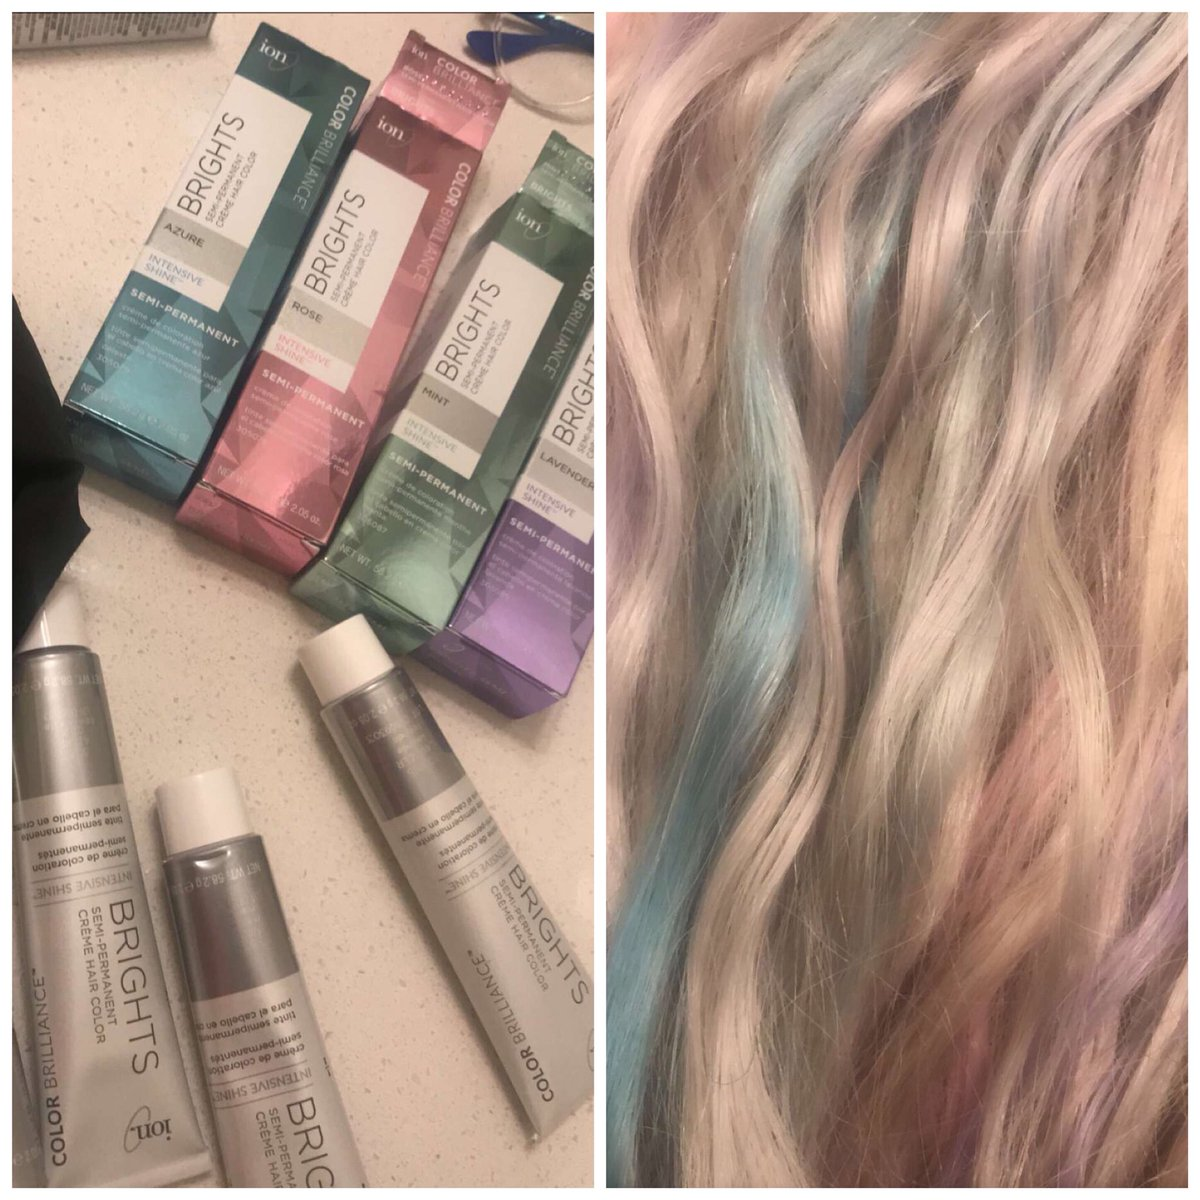 Suto On Twitter Had Some Fun With My Hair Again Today Haven T Been Brave With Colors For Awhile Think I Really Like The Light Tones But Might Darken Just A Bit Before